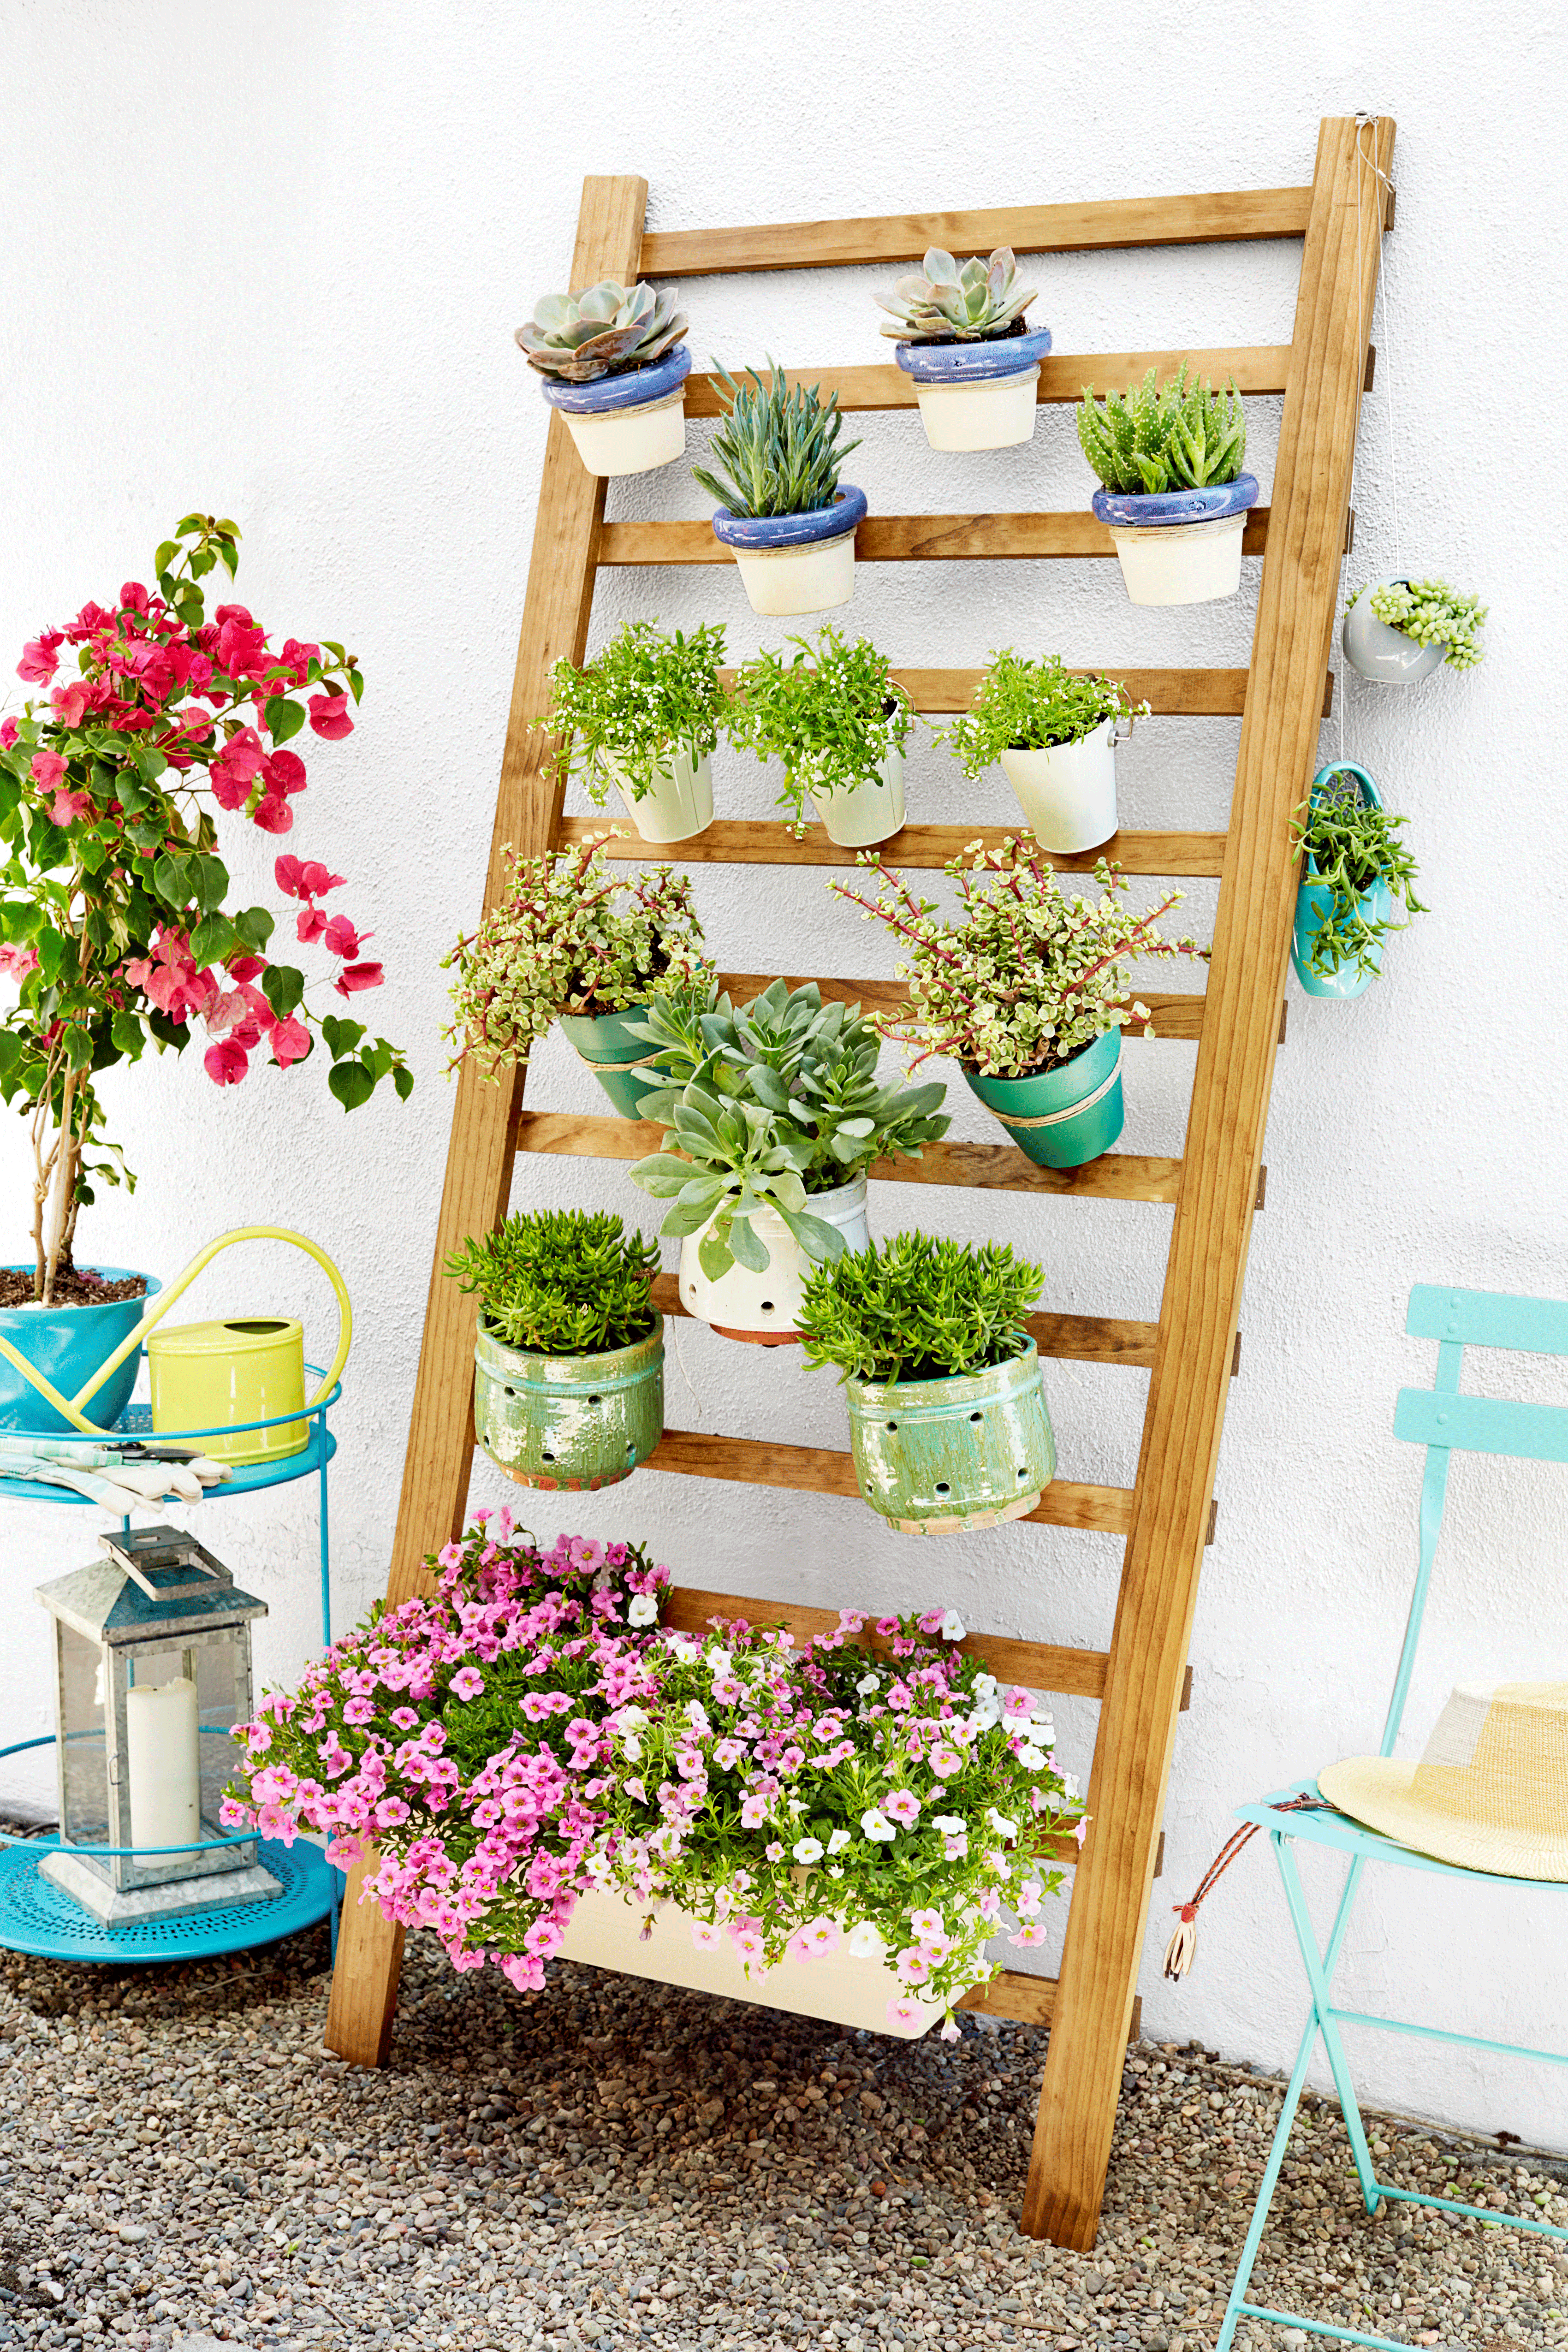 How To Make A Vertical Garden Diy A Vertical Garden In 3